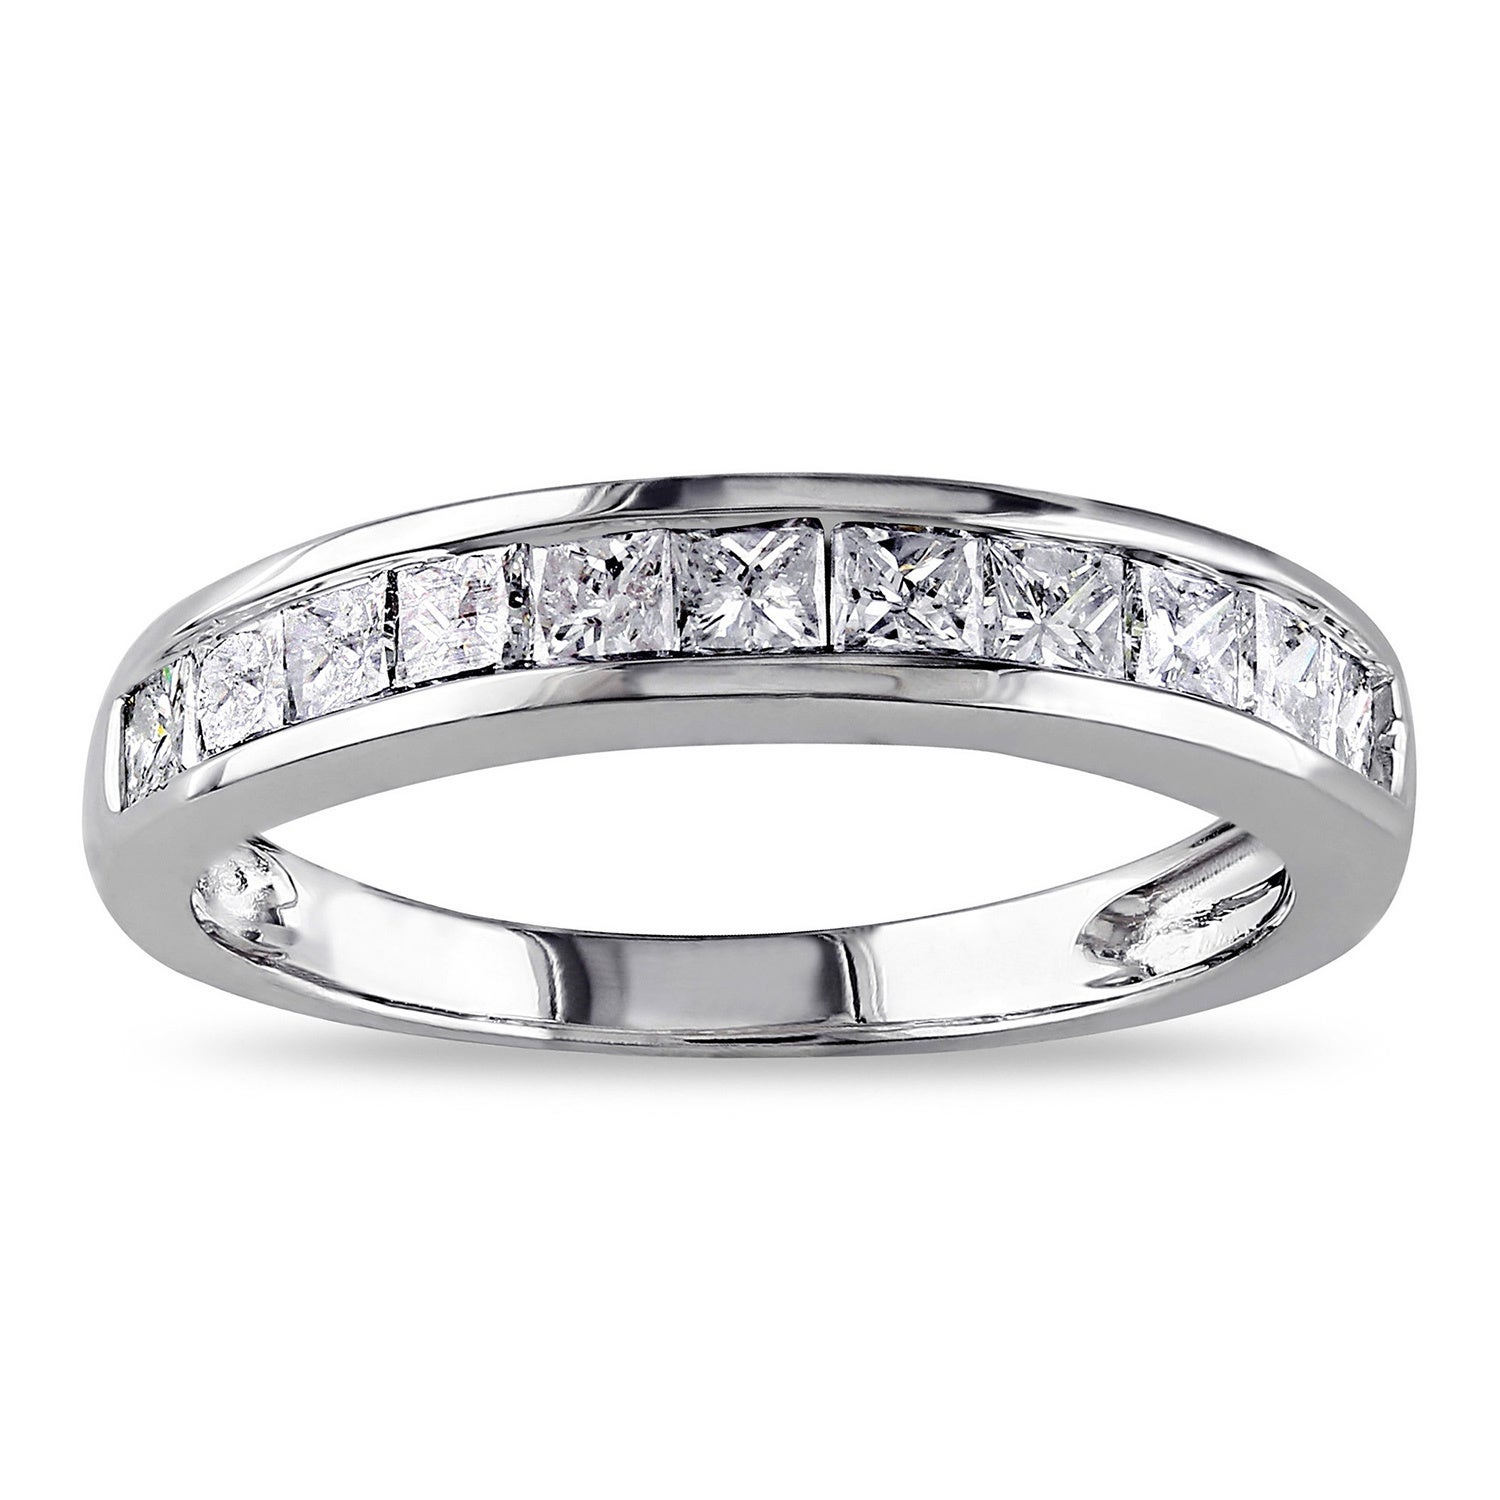 Miadora 14K White Gold 3/4Ct Tdw Channel Set Princess Cut Diamond  Anniversary Band (G H, I2 I3) For Most Up To Date Princess Cut Diamond Anniversary Bands In White Gold (Gallery 1 of 25)